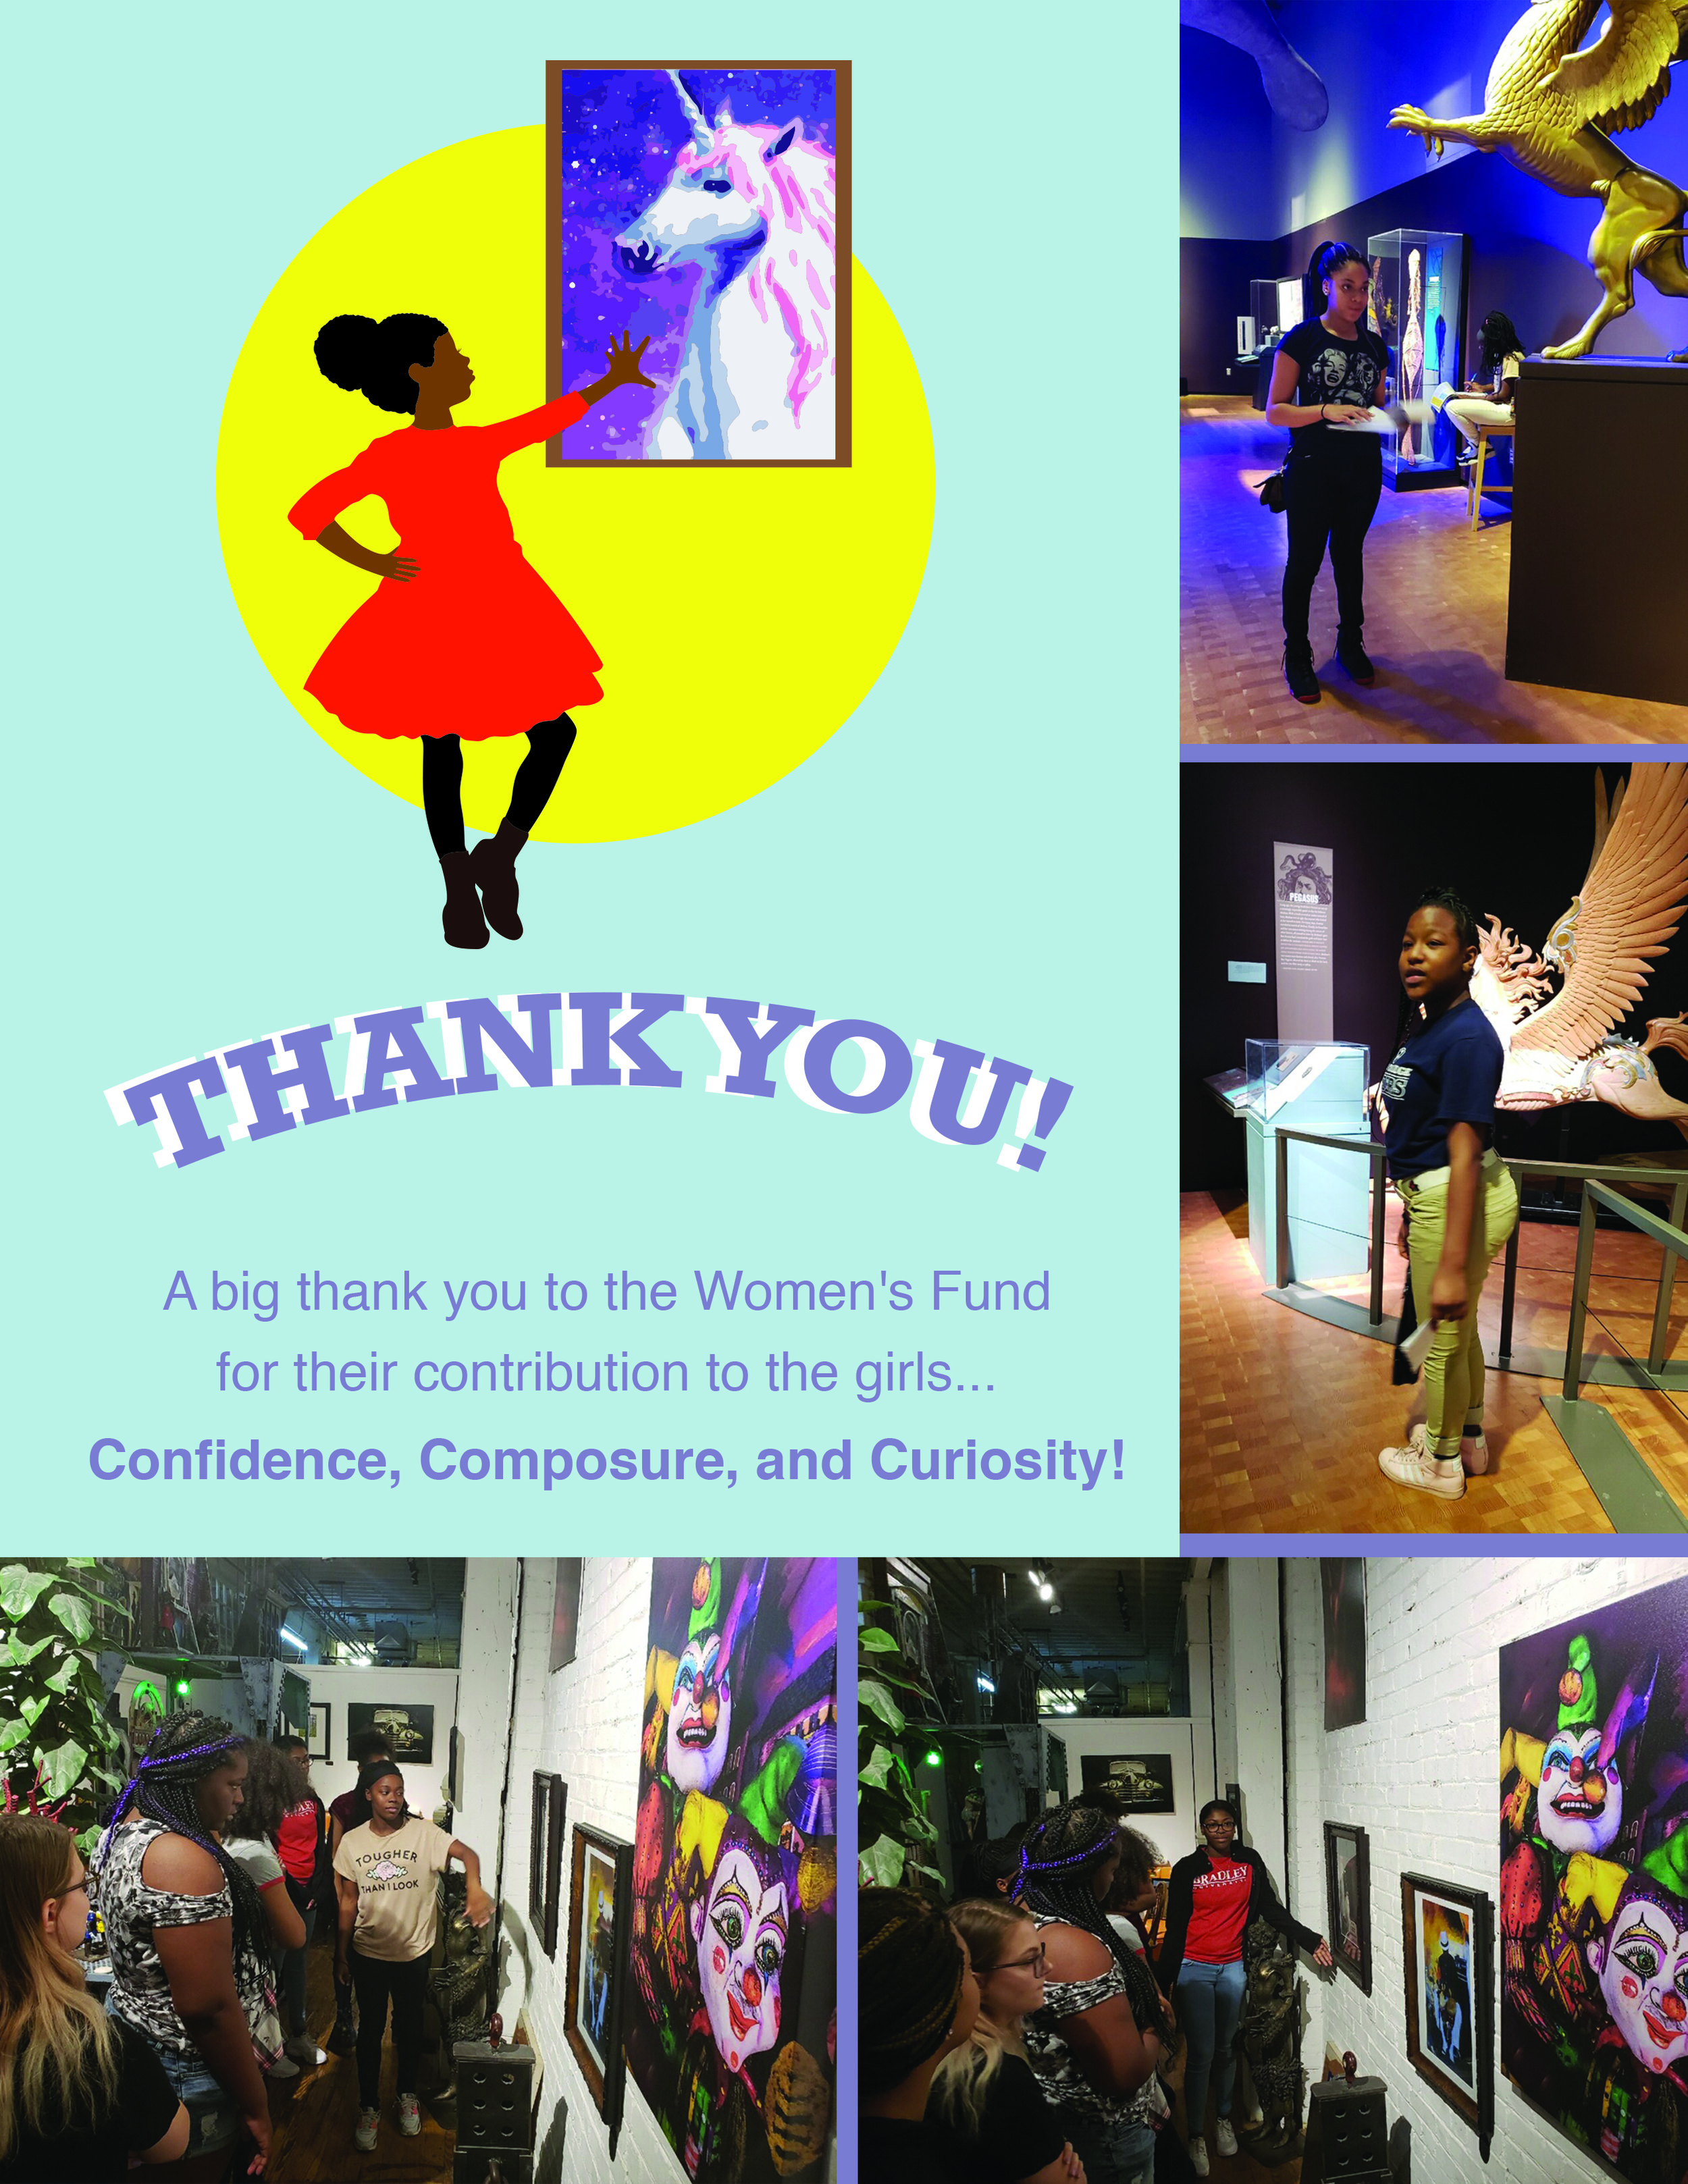 Thank you to women's fund.jpg